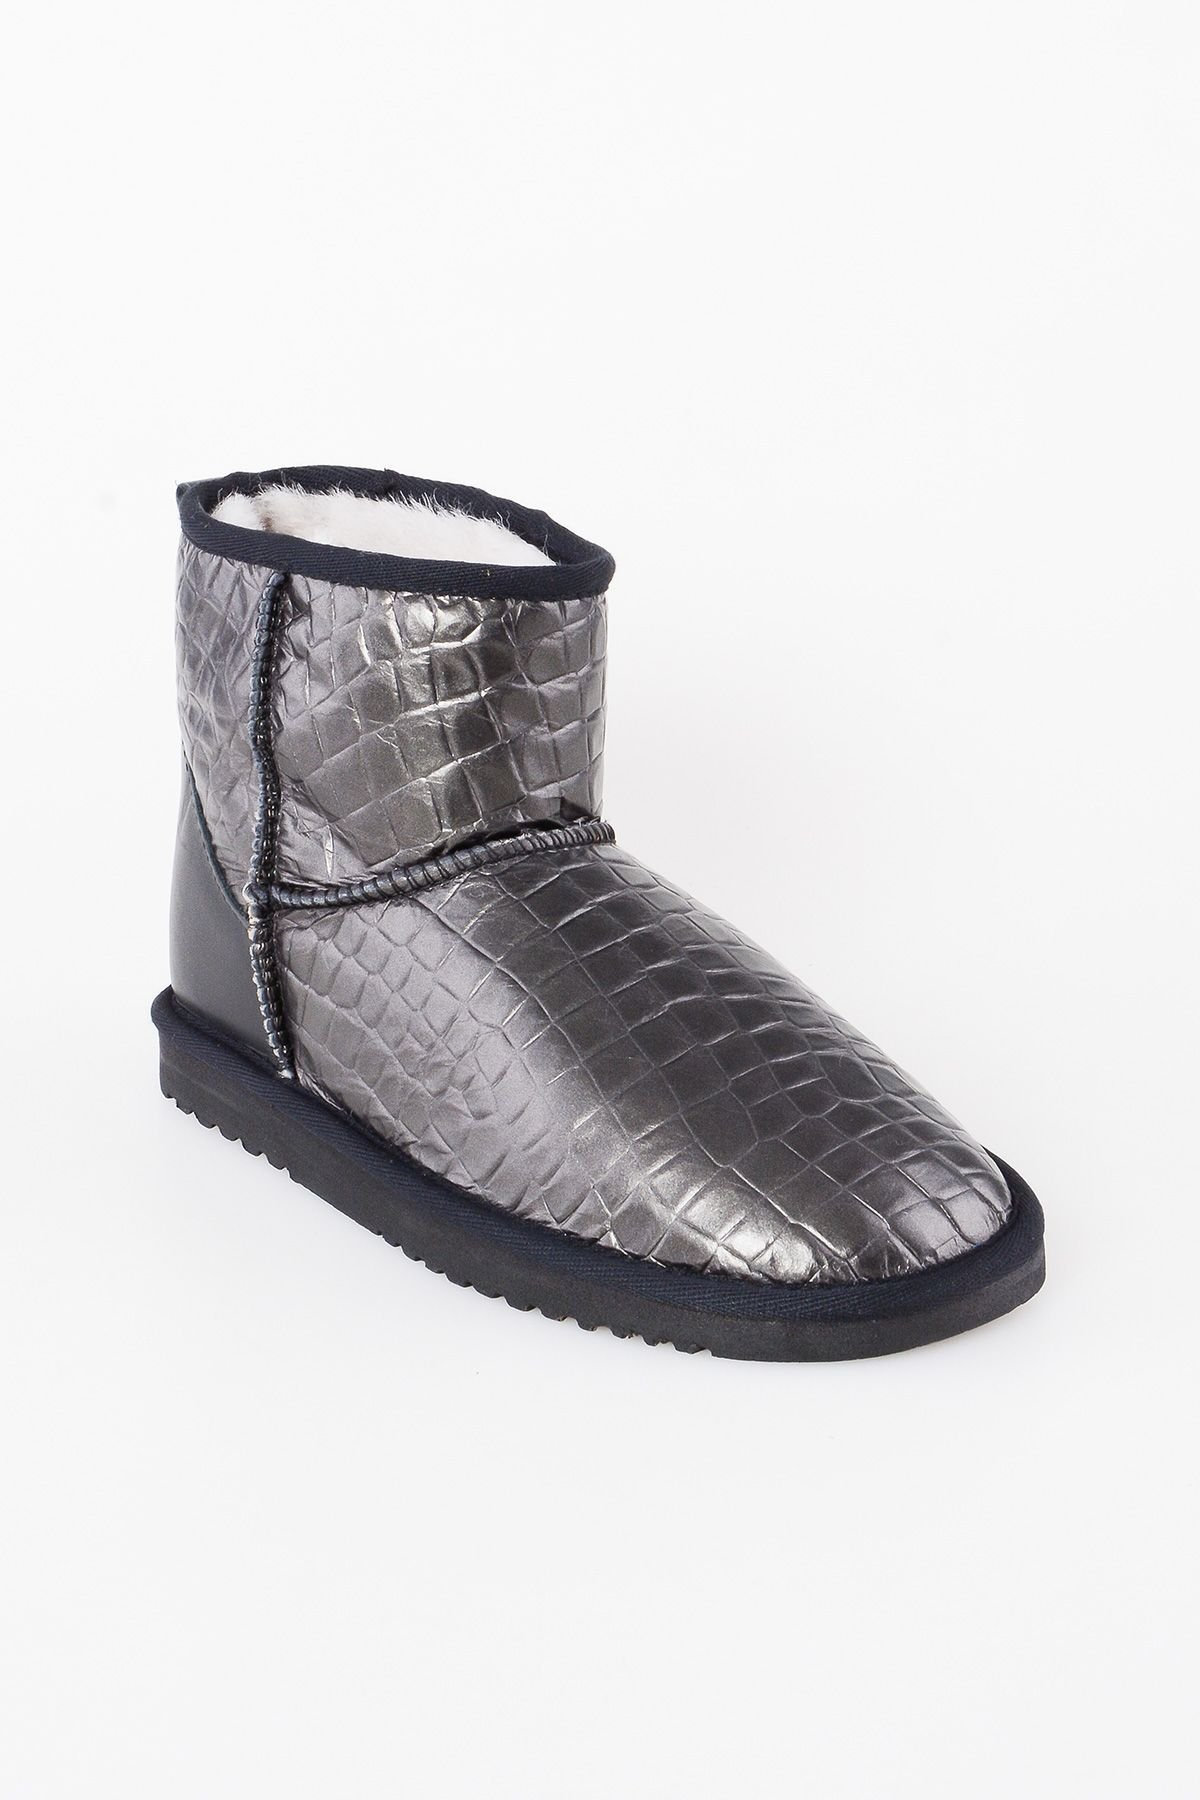 Pegia Genuine Leather & Shearling Short Women's Boots With Crocodile Pattern 980412 Black